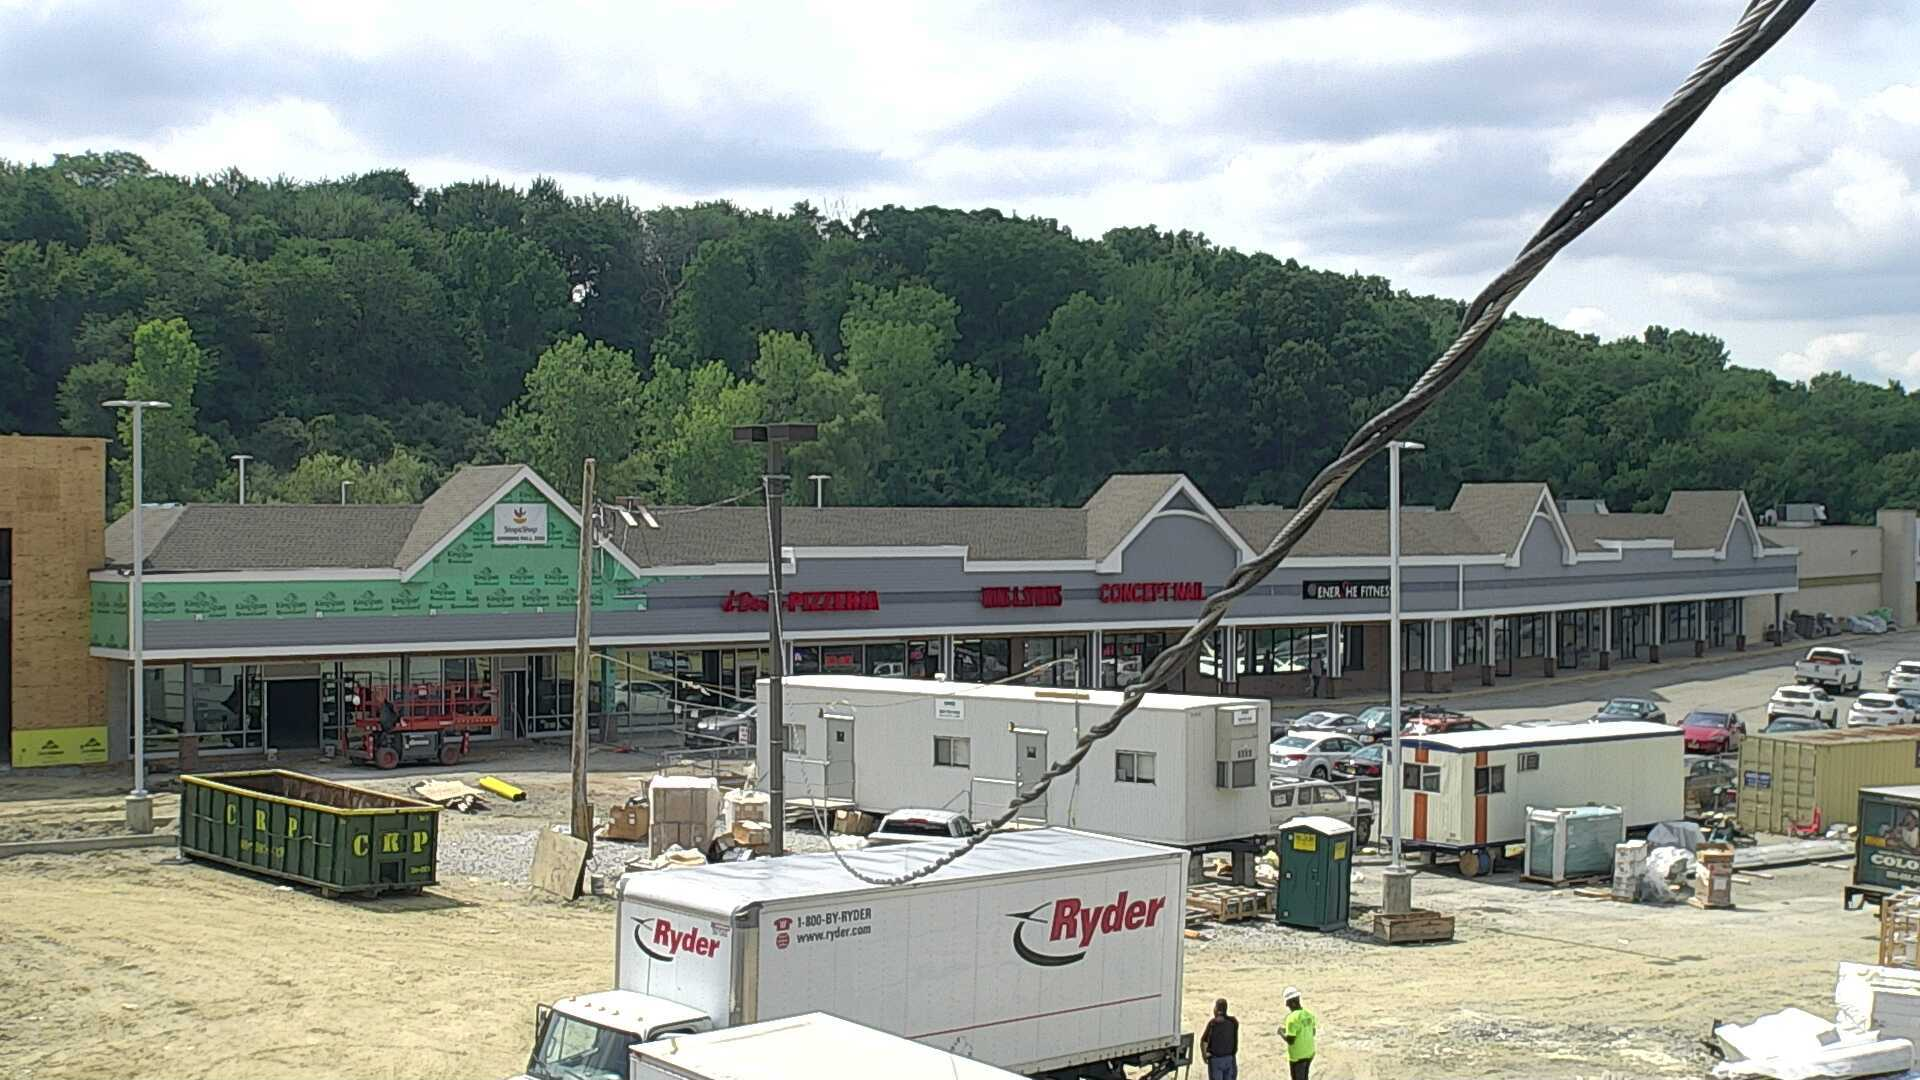 Lake_Plaza_Shopping_Center_ConstructionCam_HD_2018-07-11_105105